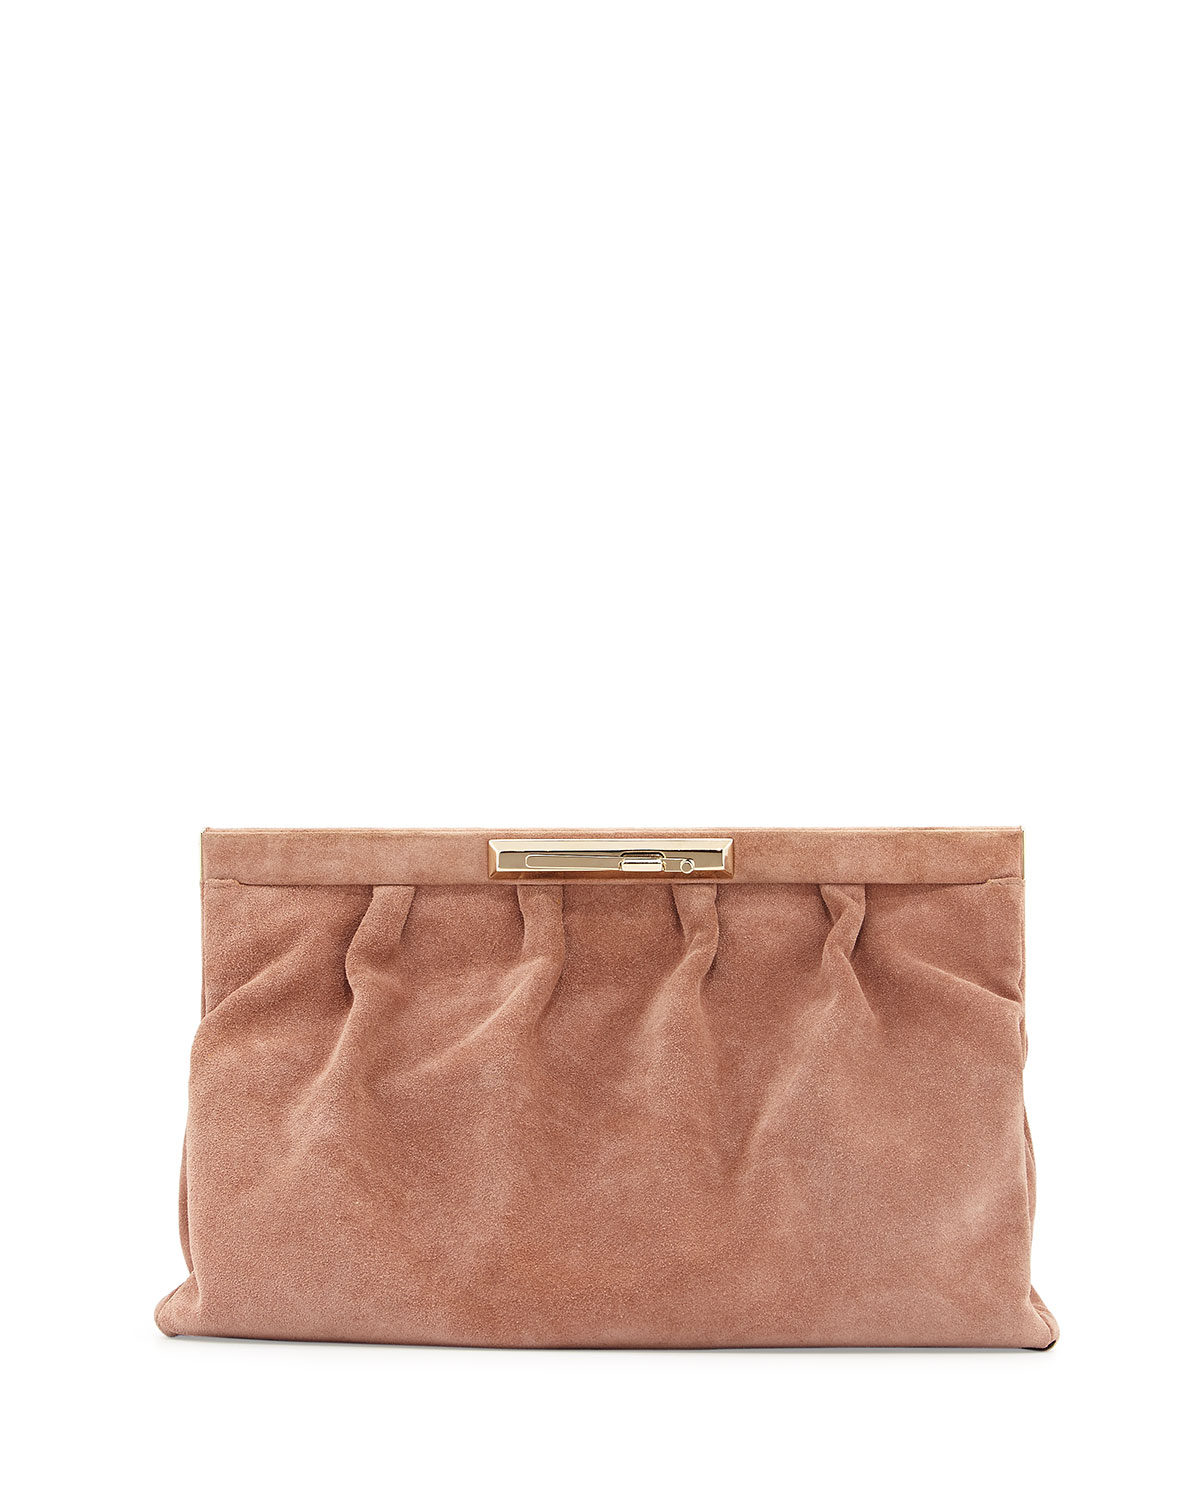 Valentino Pleated Suede Large Clutch Bag in Brown | Lyst